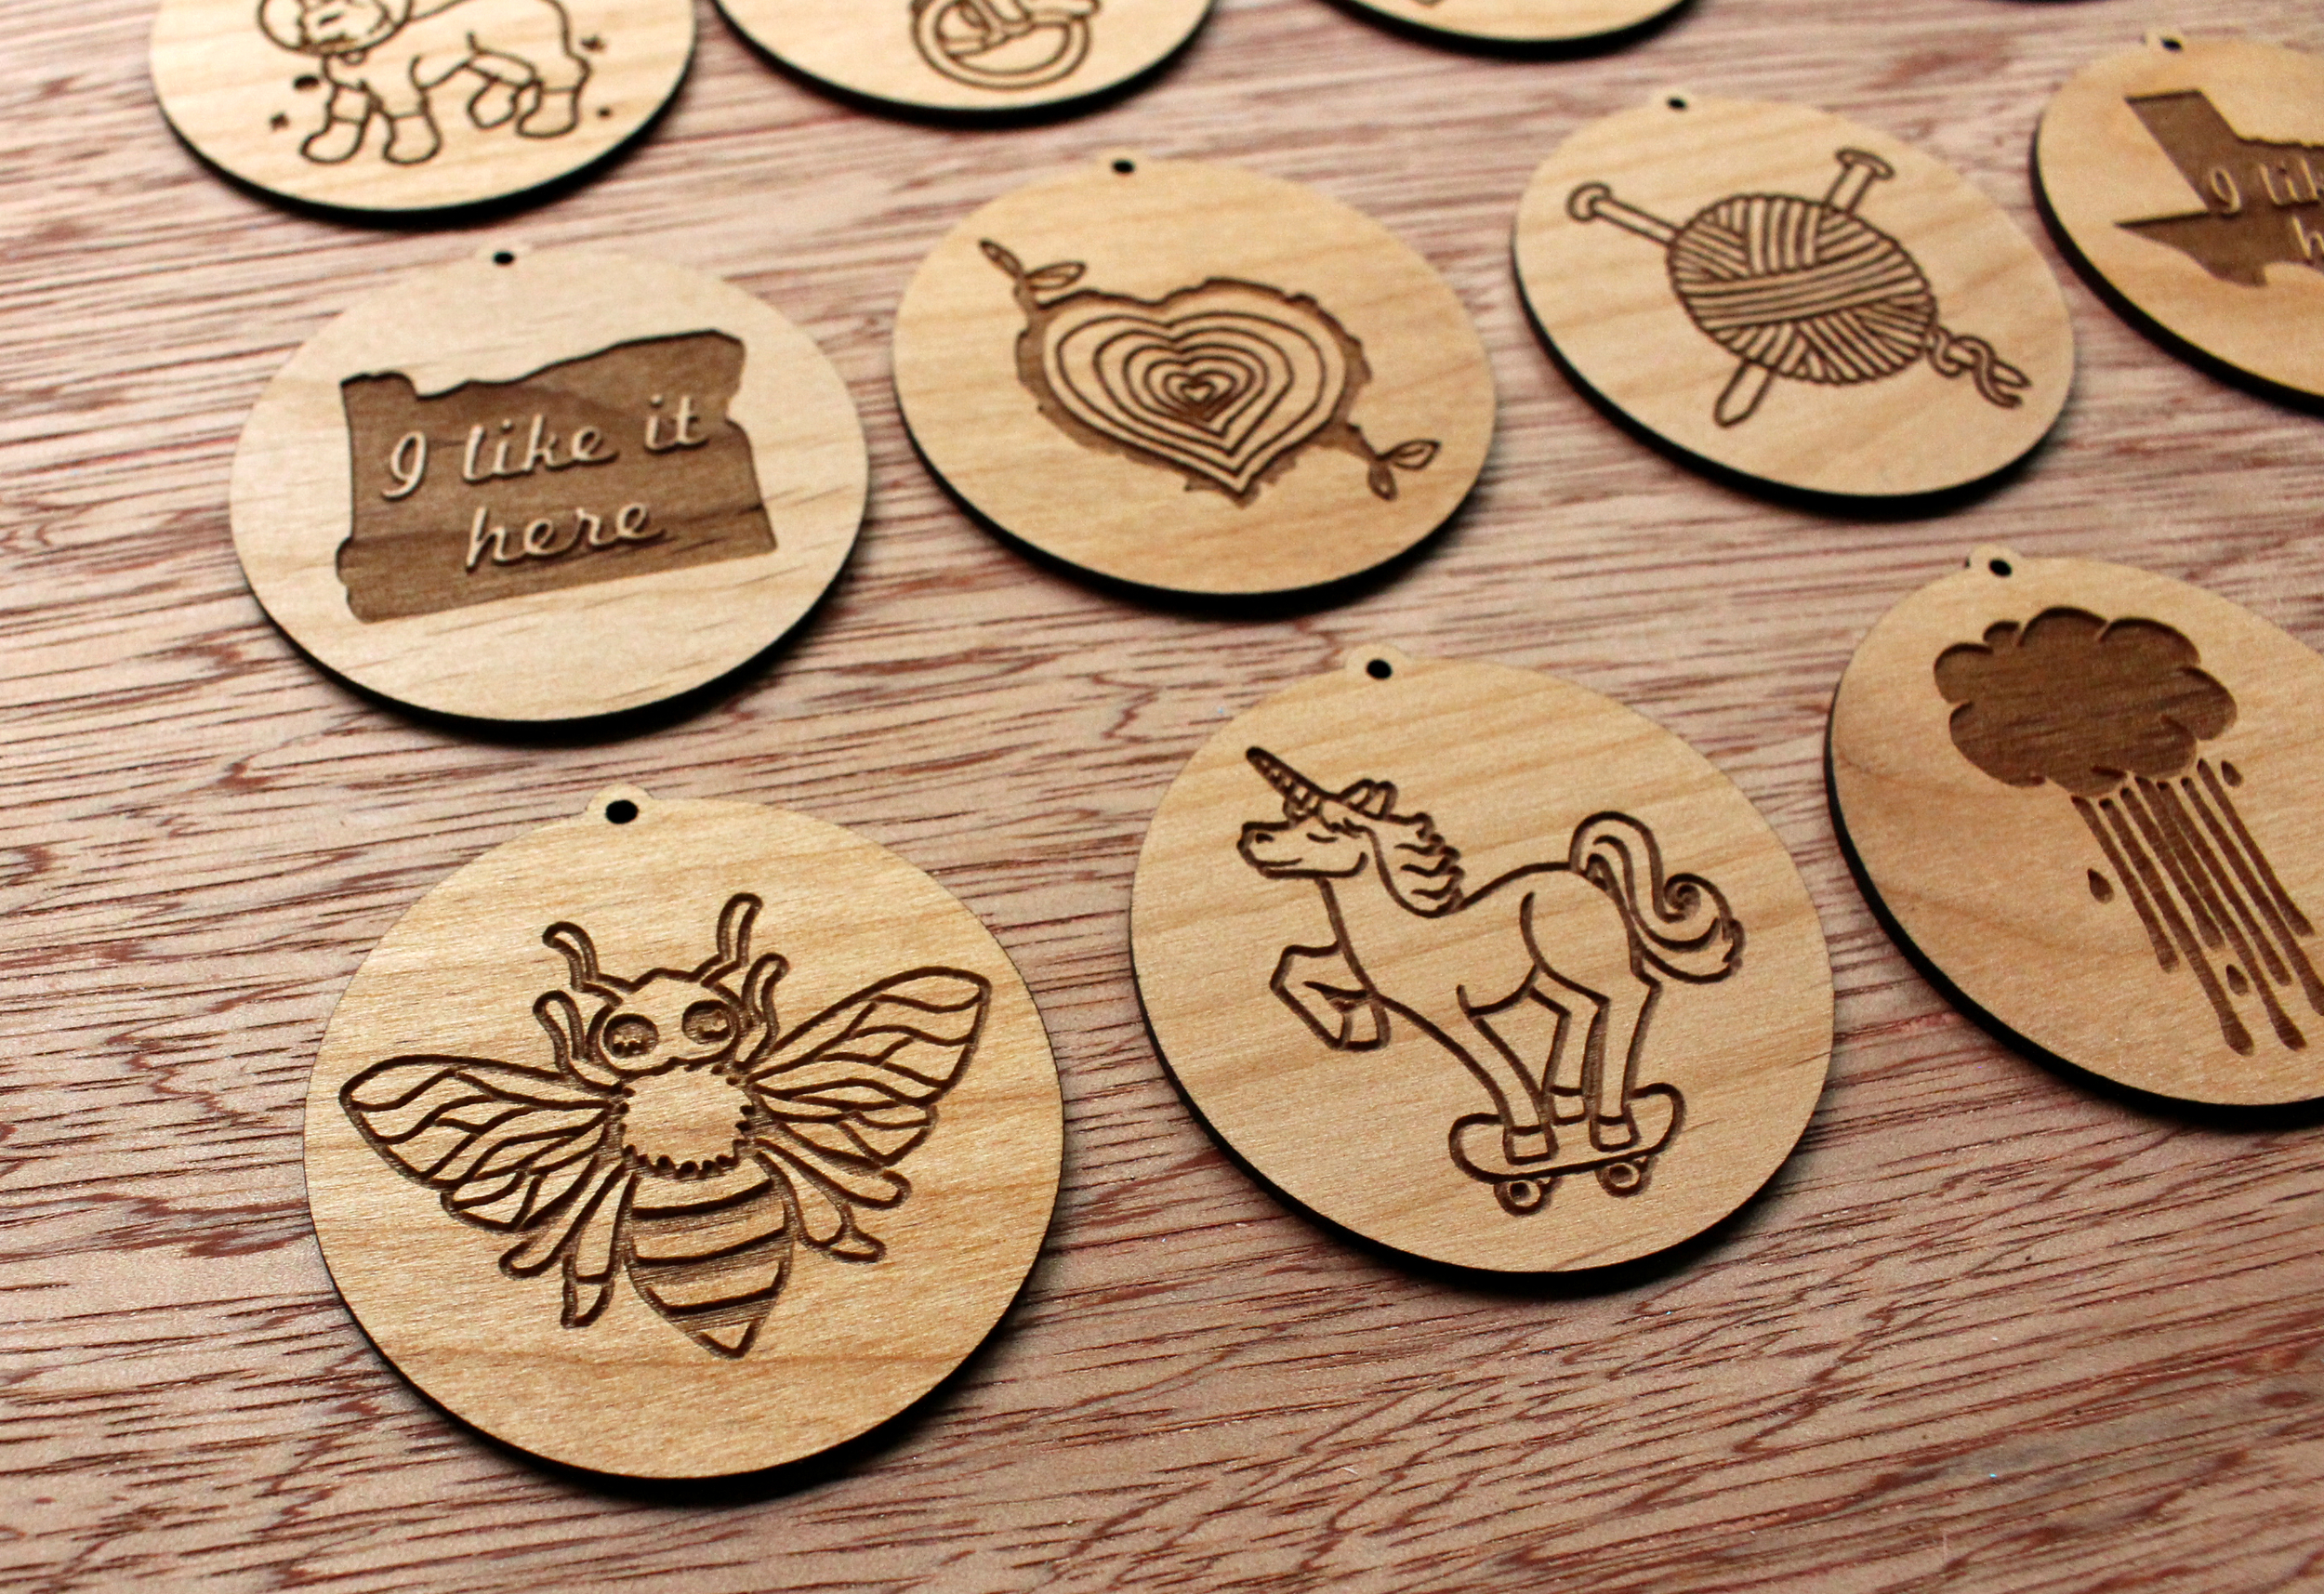 Bread and Badger - Ornaments & Pendants